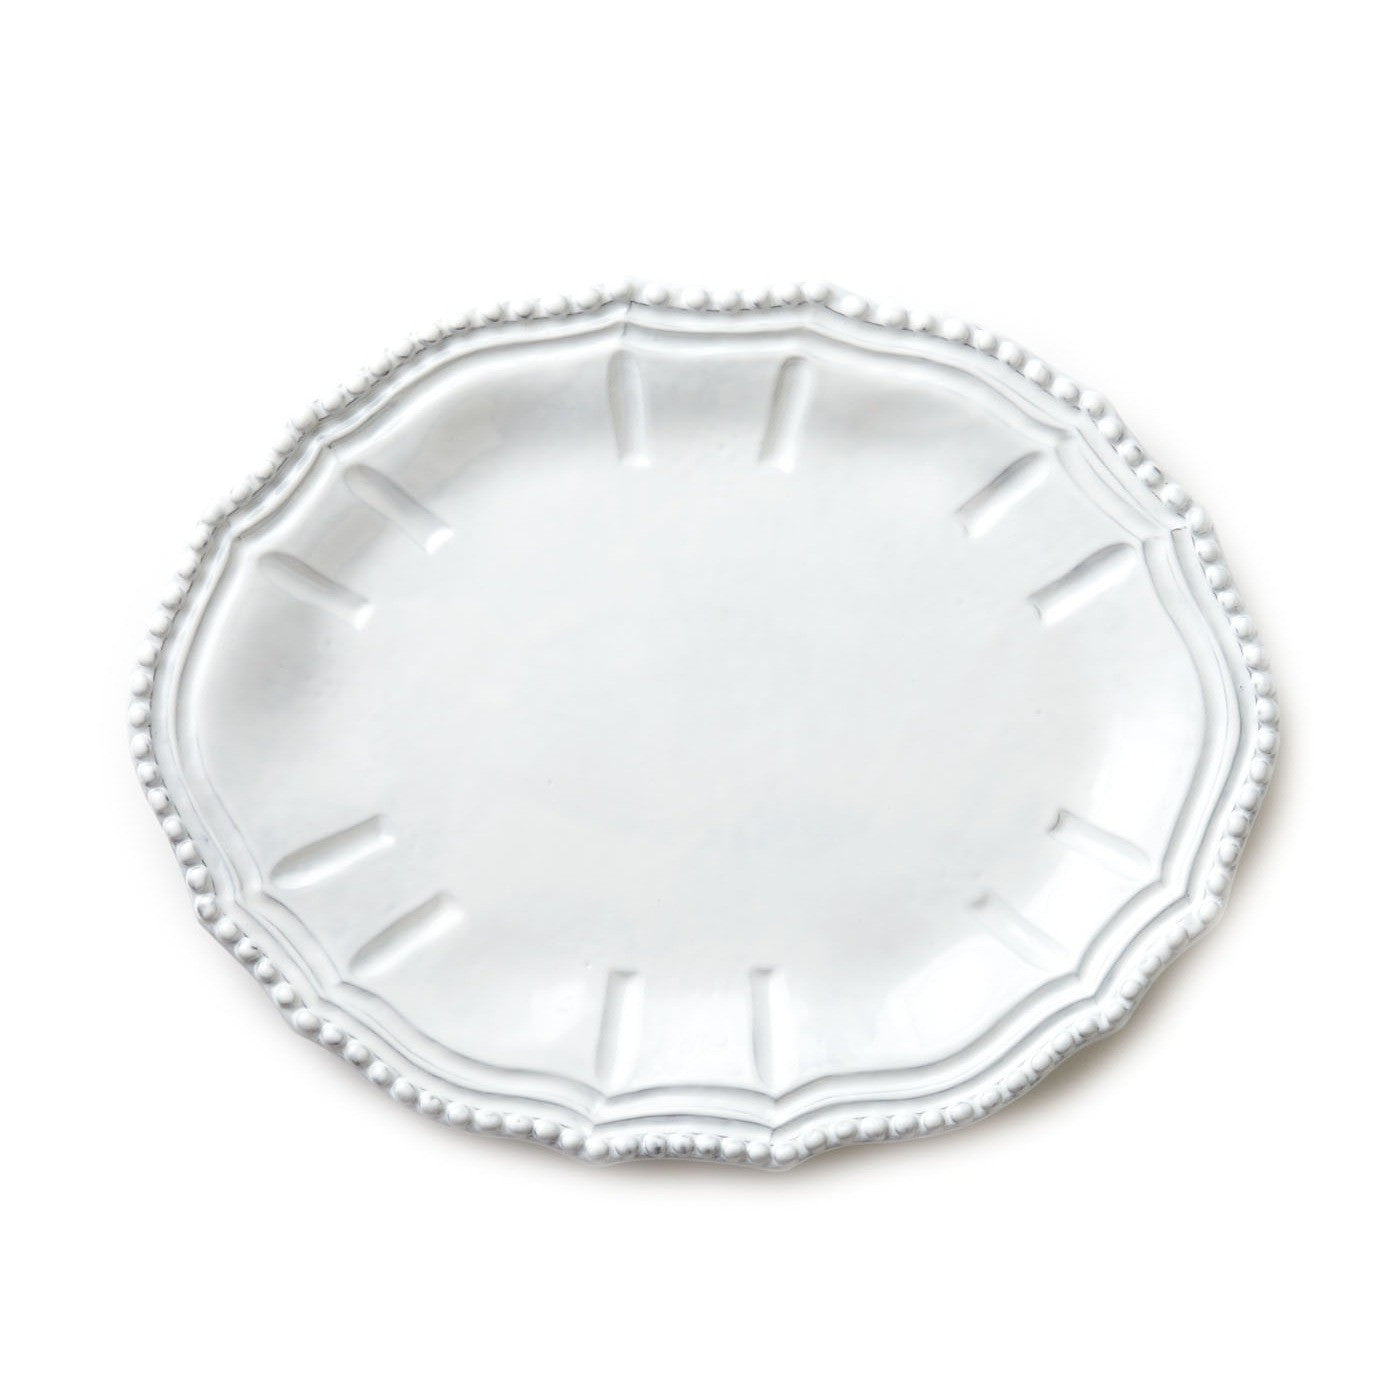 Incanto Baroque Small Oval Platter , tableware - Vietri, Pezzo Bello